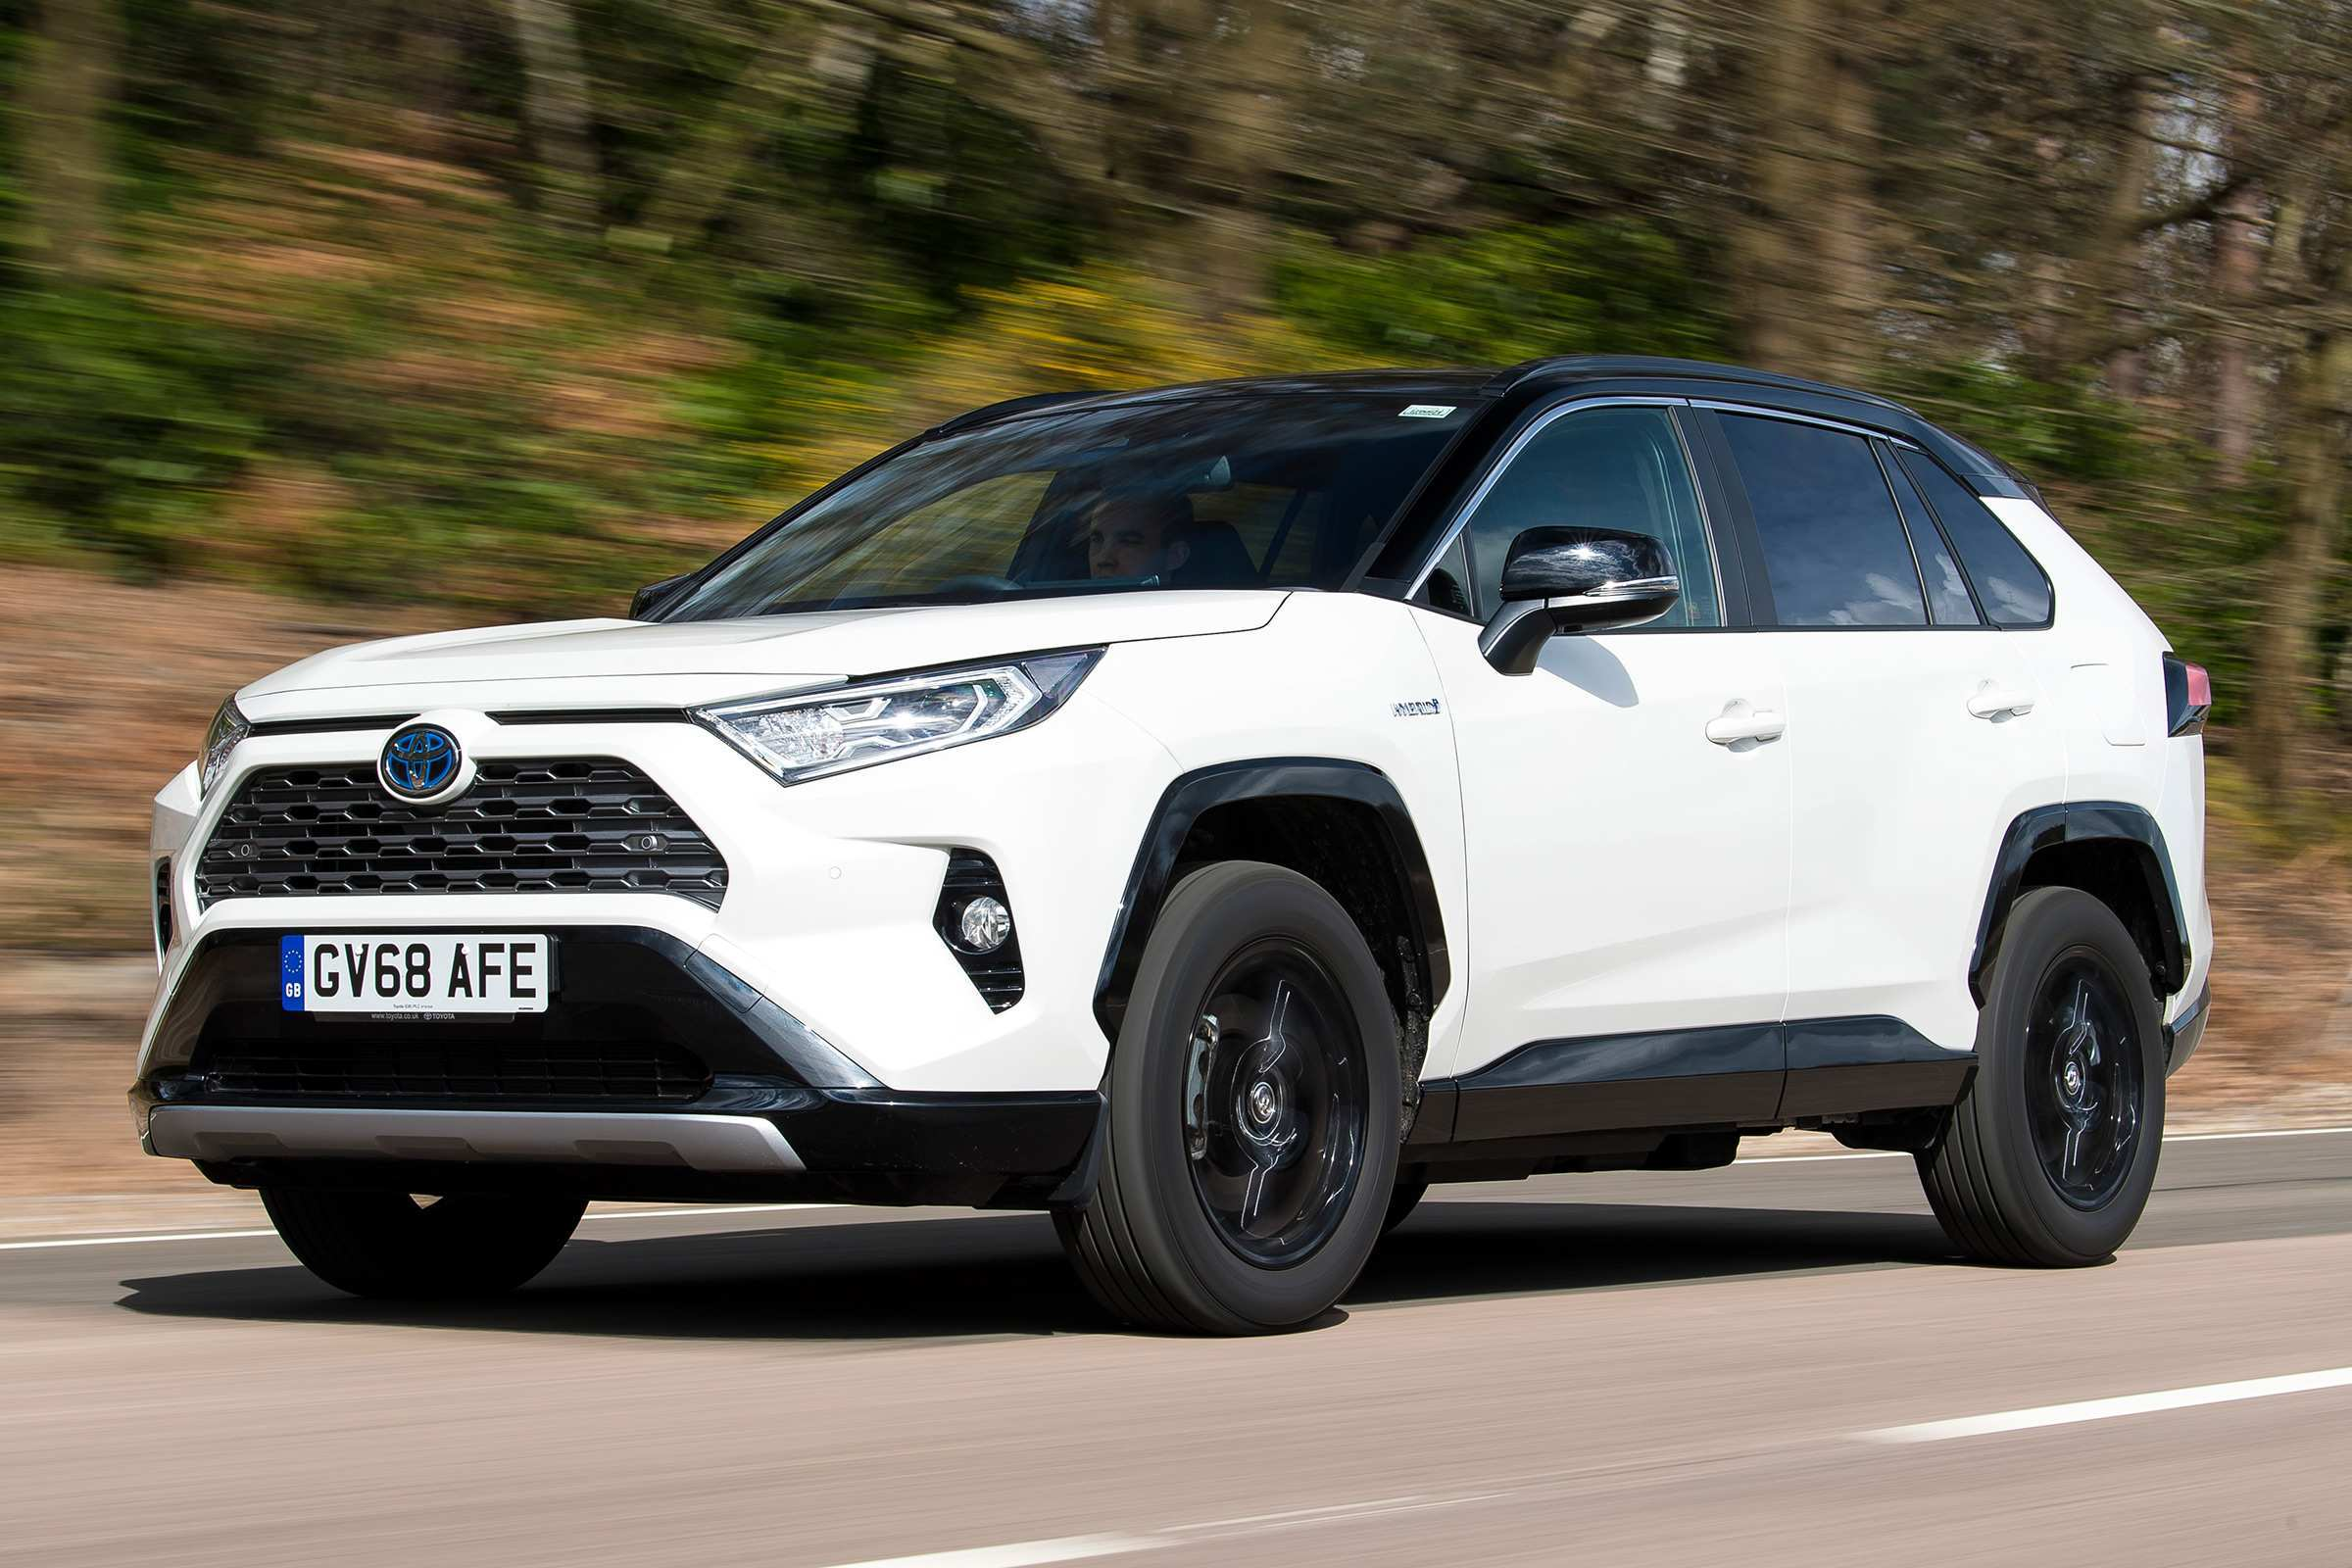 68 Great Best Toyota Off Road Vehicle 2019 Specs And Review Exterior and Interior by Best Toyota Off Road Vehicle 2019 Specs And Review